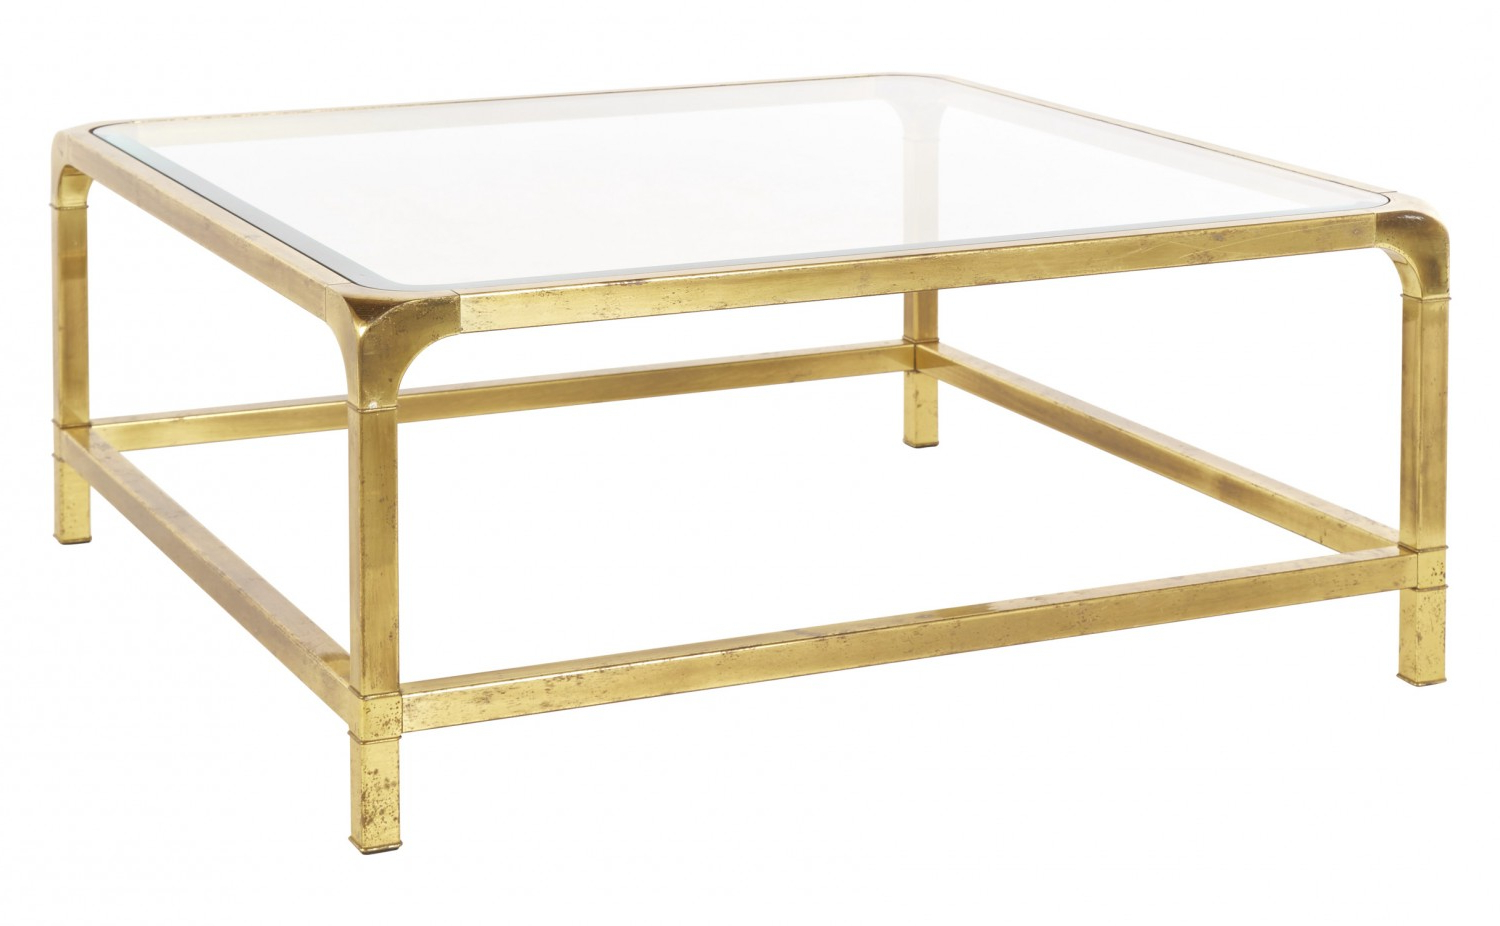 Jayson Home Pertaining To Antique Brass Coffee Tables (Gallery 11 of 20)